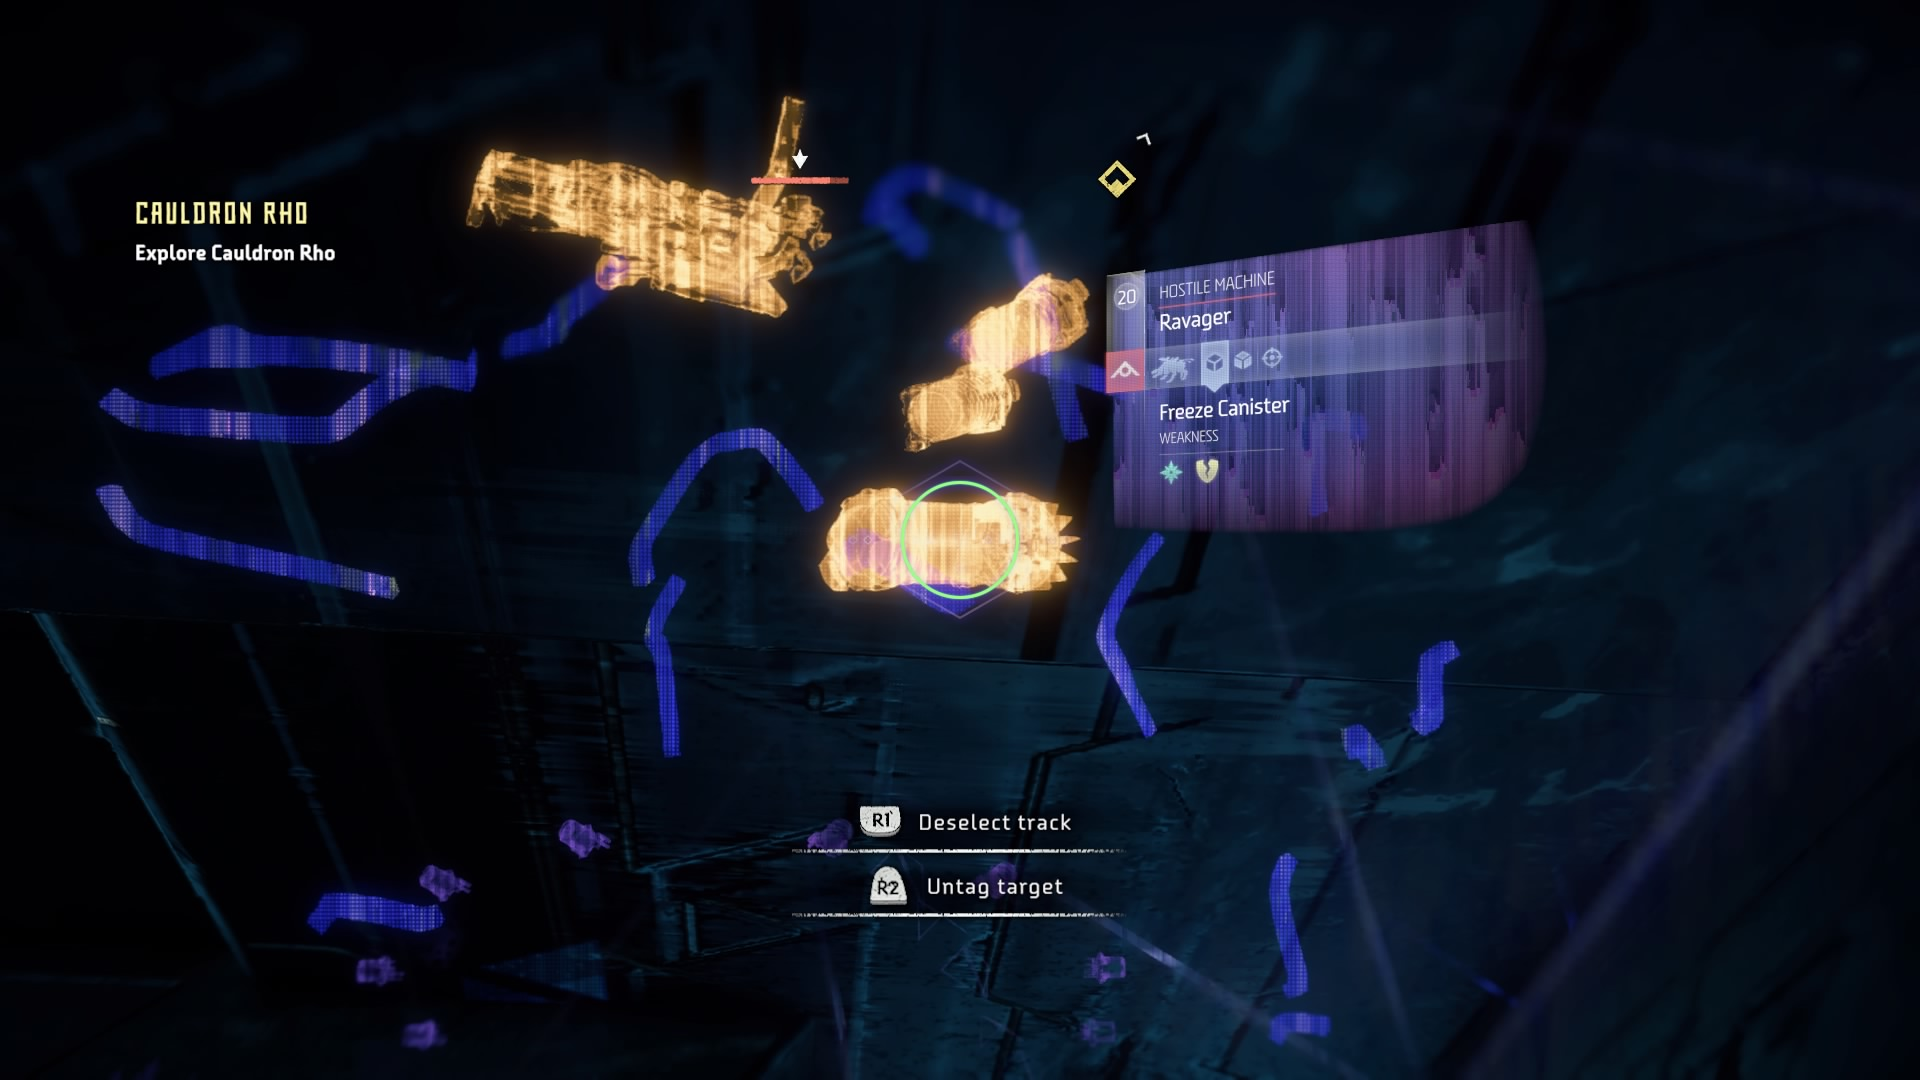 """While some may have complained about the scanning in Horizon to be too closely modeled after Batman's scanning, I don't care. It worked well for what they used it and it didn't feel like a gimmick. It did suck when you went into the scanning mode on accident in the middle of a crazy fight because it slowed your movement speed down to """"punch me in the face please"""" per hour."""